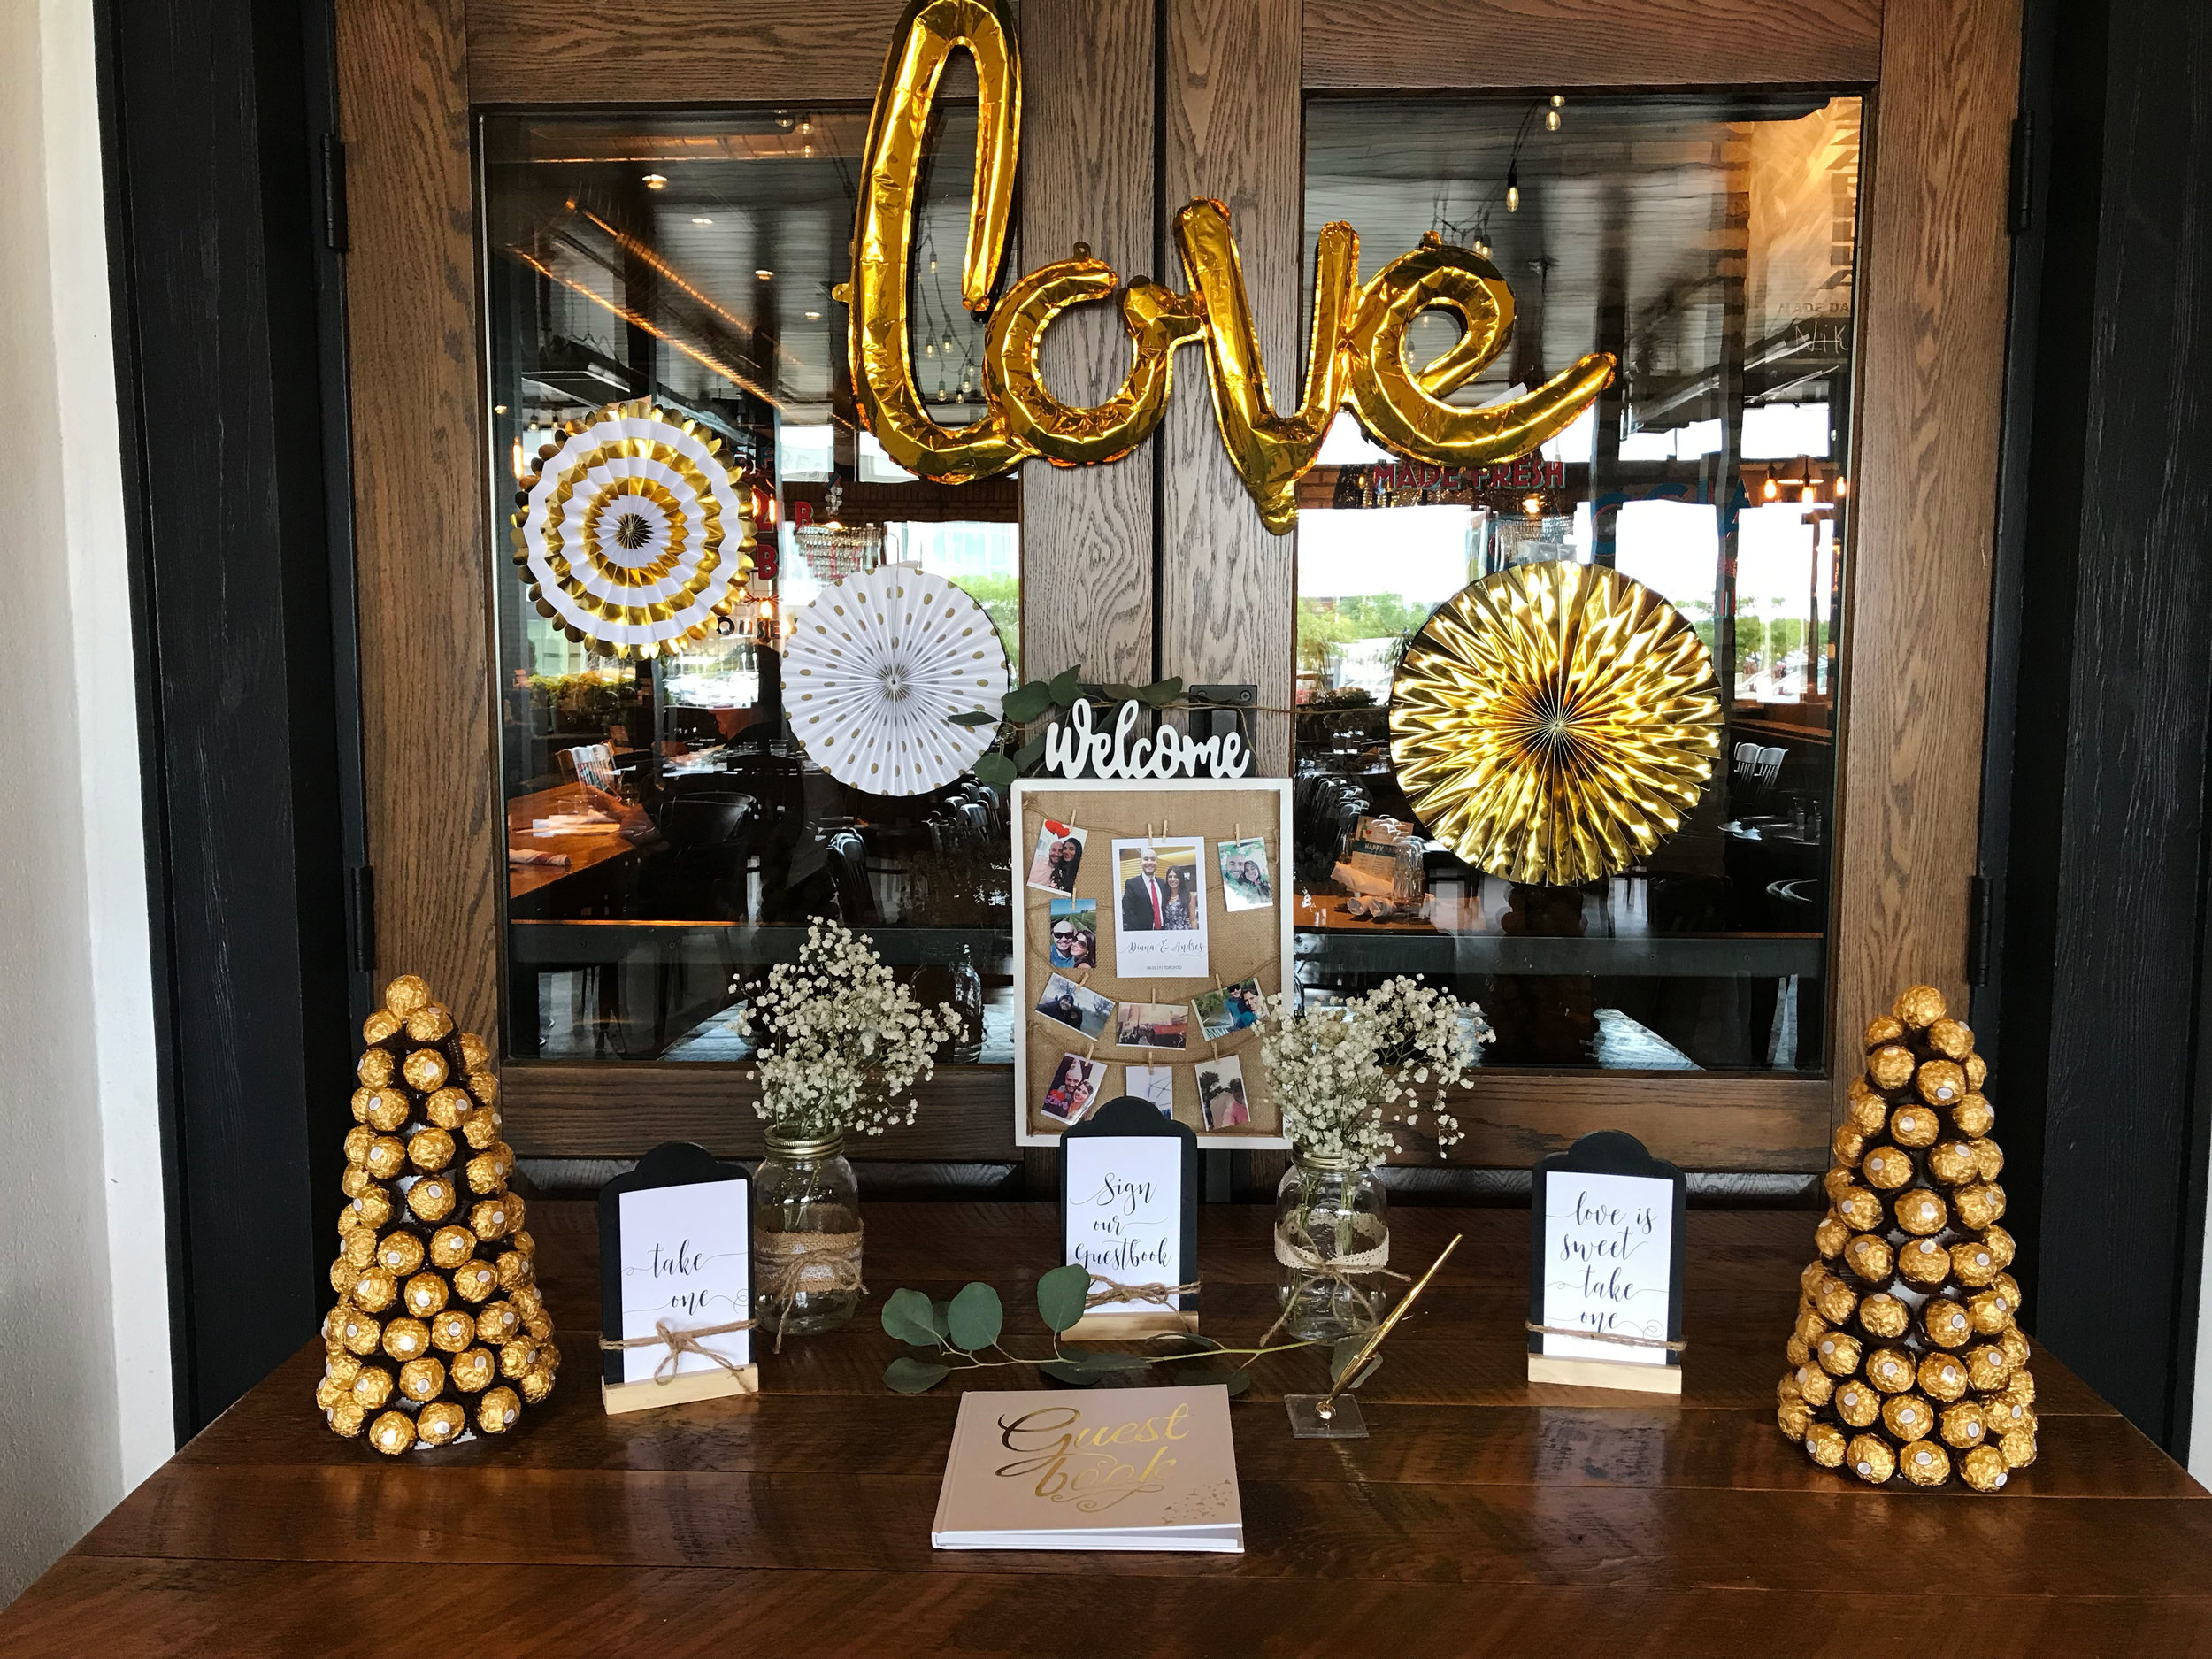 diana-andres-rustic-harvest-welcome-table-Love-ferrer-rocher-polaroid-guestbook-signing-gold-fans.jpg